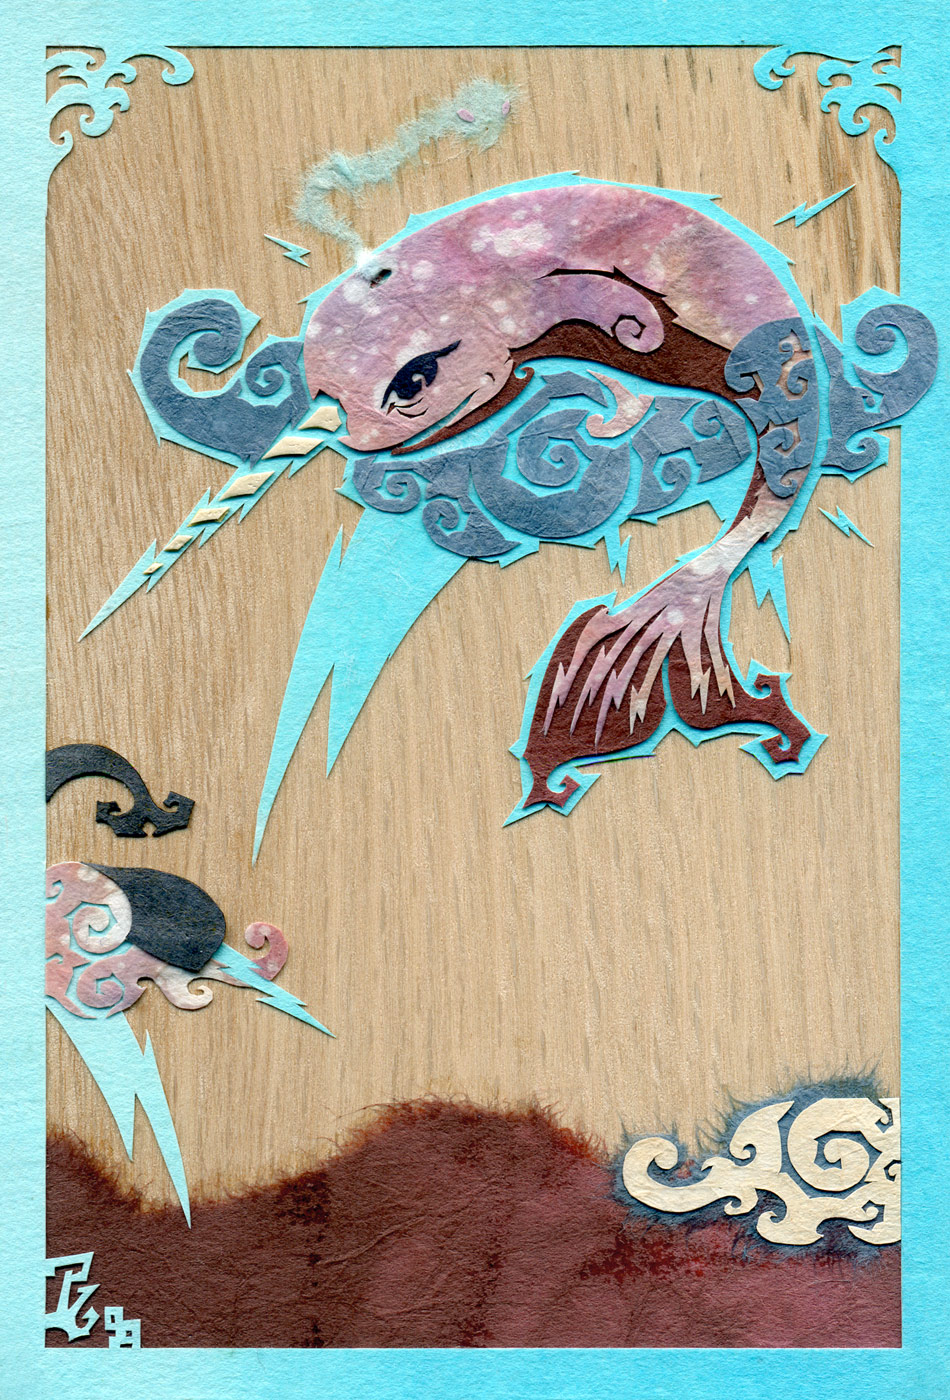 ⊛ The Electric Narwhal ⊛ cut + torn paper + washi / wood ⊛ 6 x 4 in •150 x 100 mm ⊛ private collection